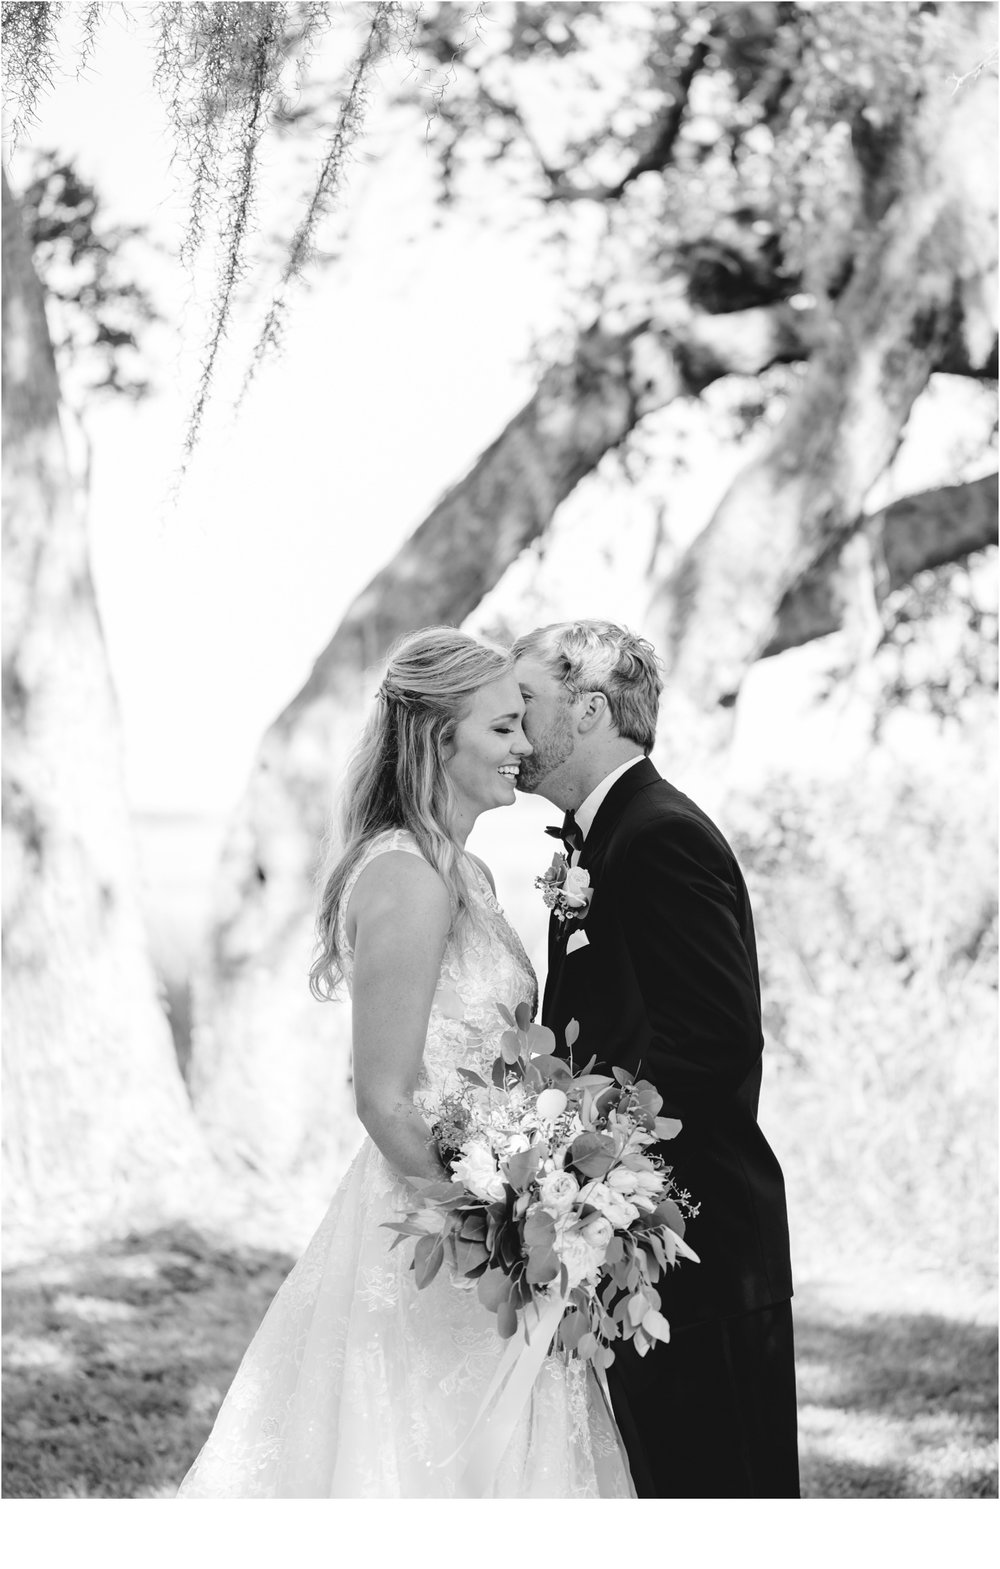 Rainey_Gregg_Photography_St._Simons_Island_Georgia_California_Wedding_Portrait_Photography_0062.jpg